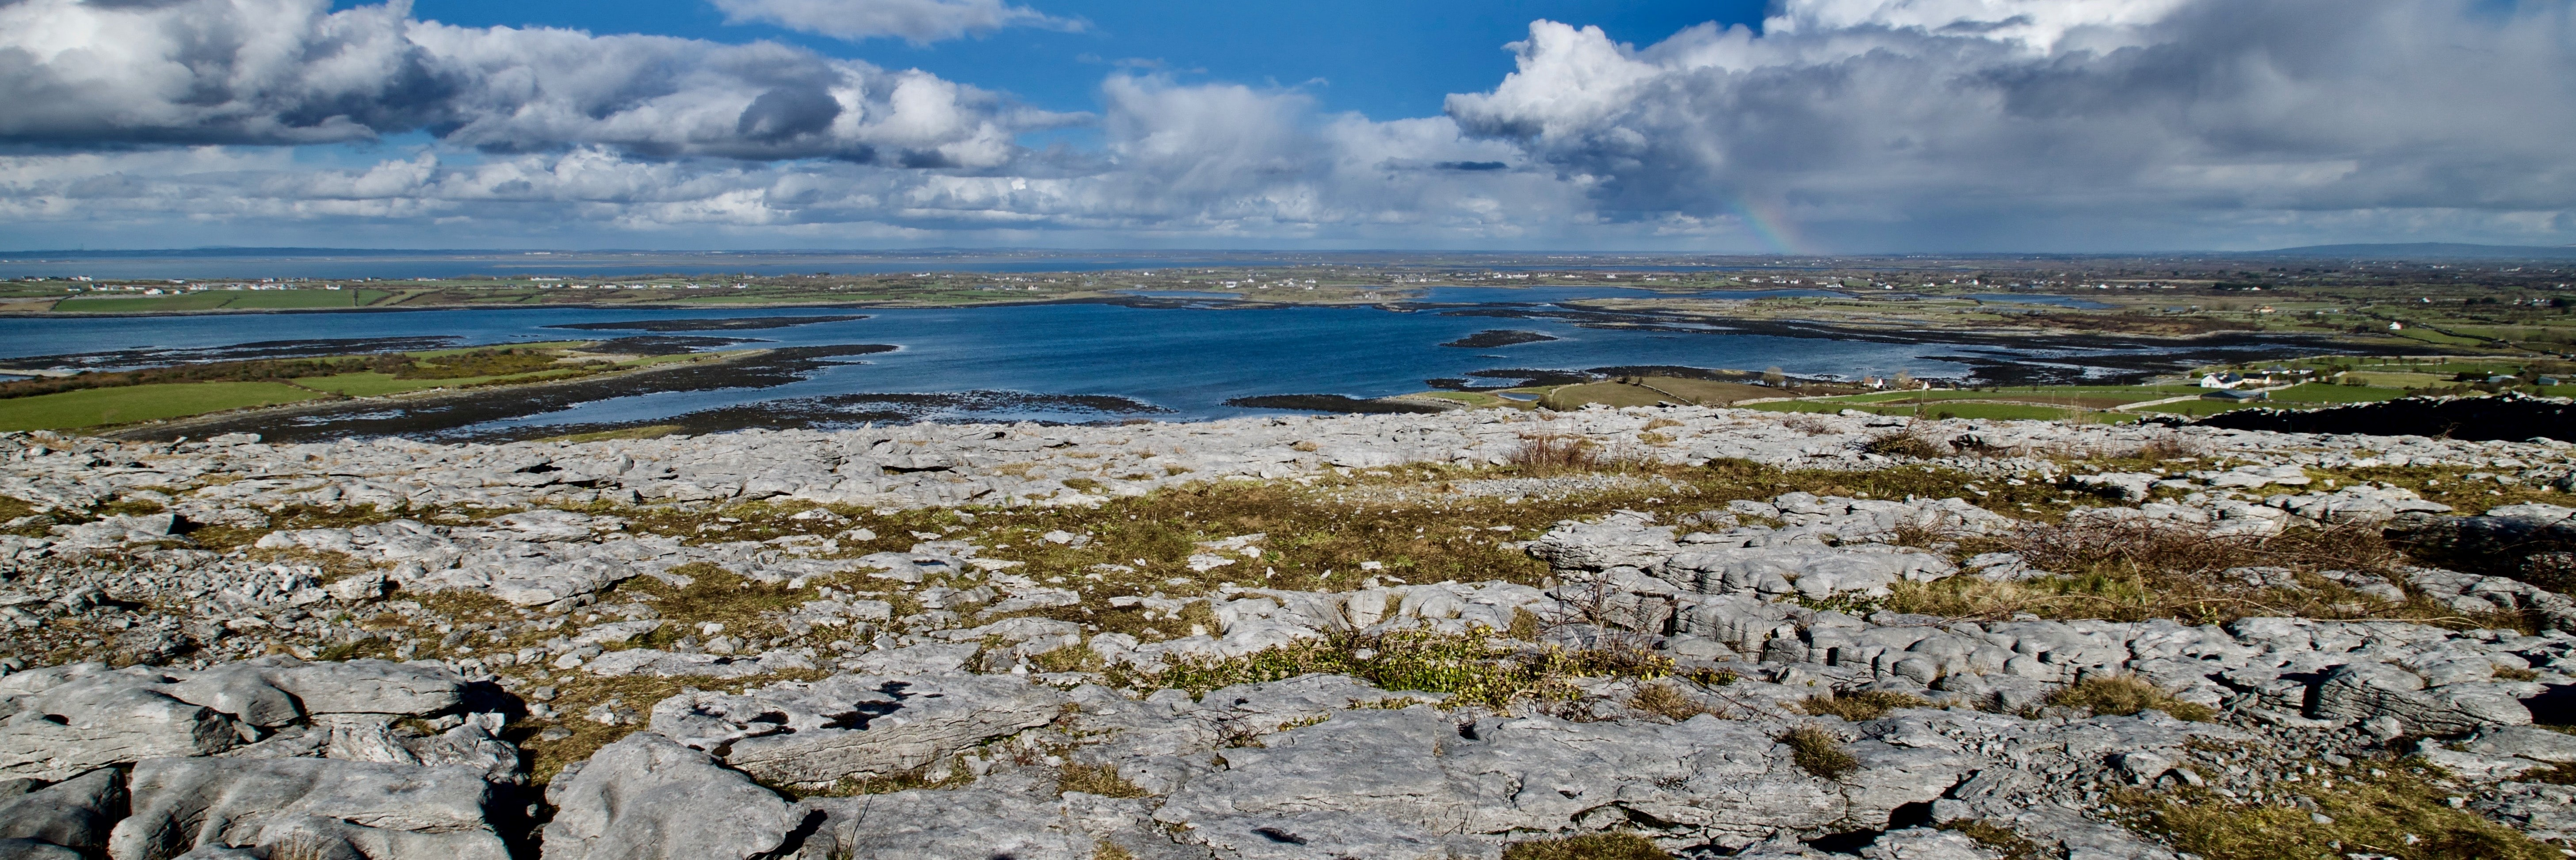 Image of the Burren and the sky